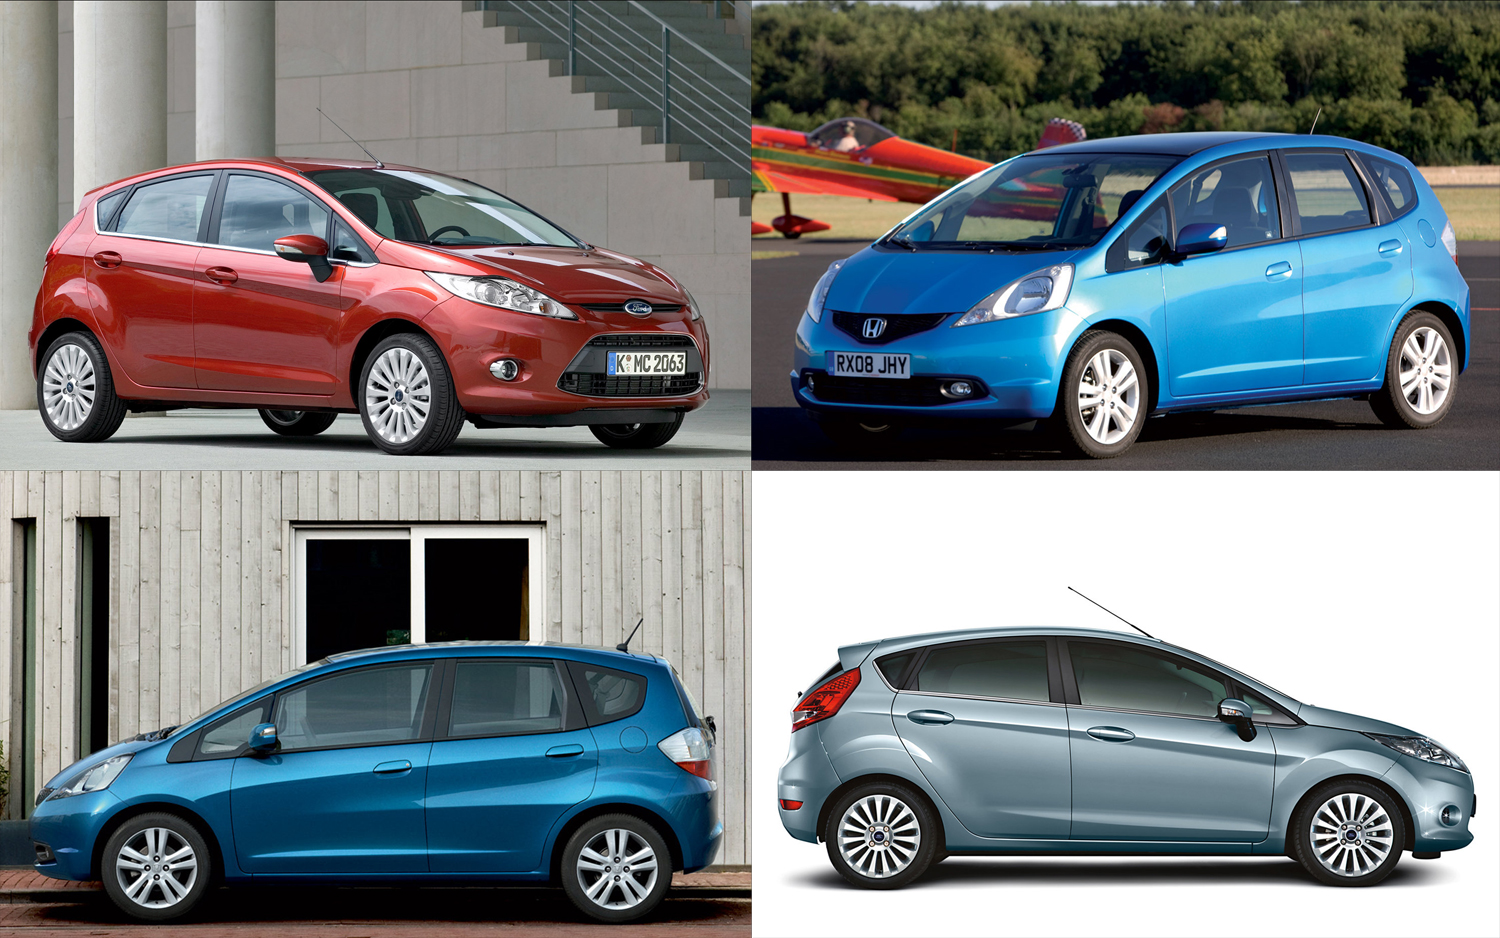 Thread Of The Day: Honda Fit Vs. Ford Fiesta